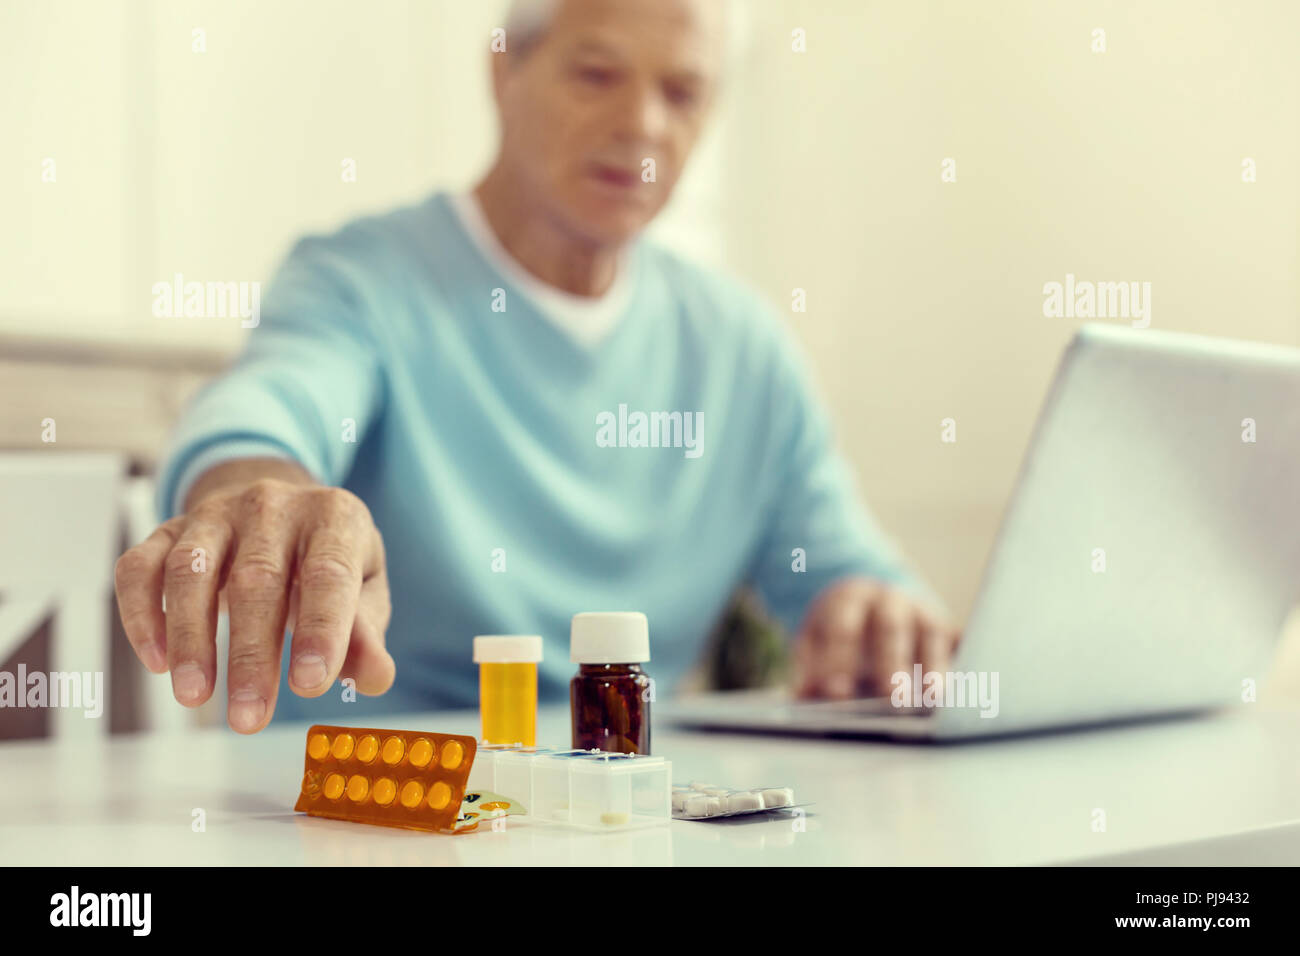 Close up of male hand reaching for medication - Stock Image